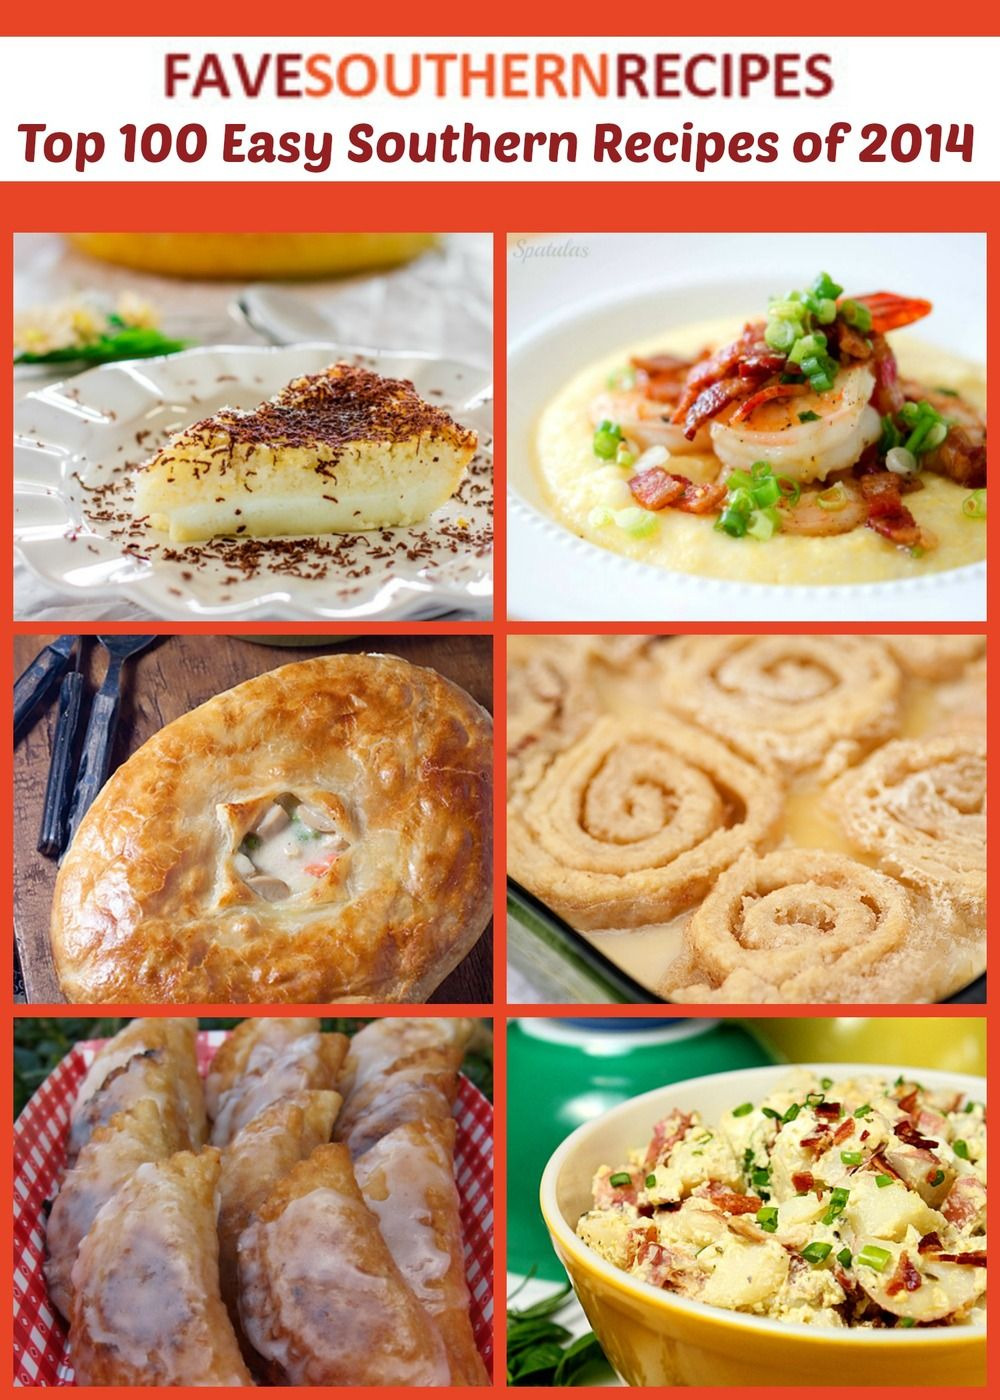 Top 100 easy southern recipes of 2014 southern easy and recipes top 100 easy southern recipes of 2014 forumfinder Gallery